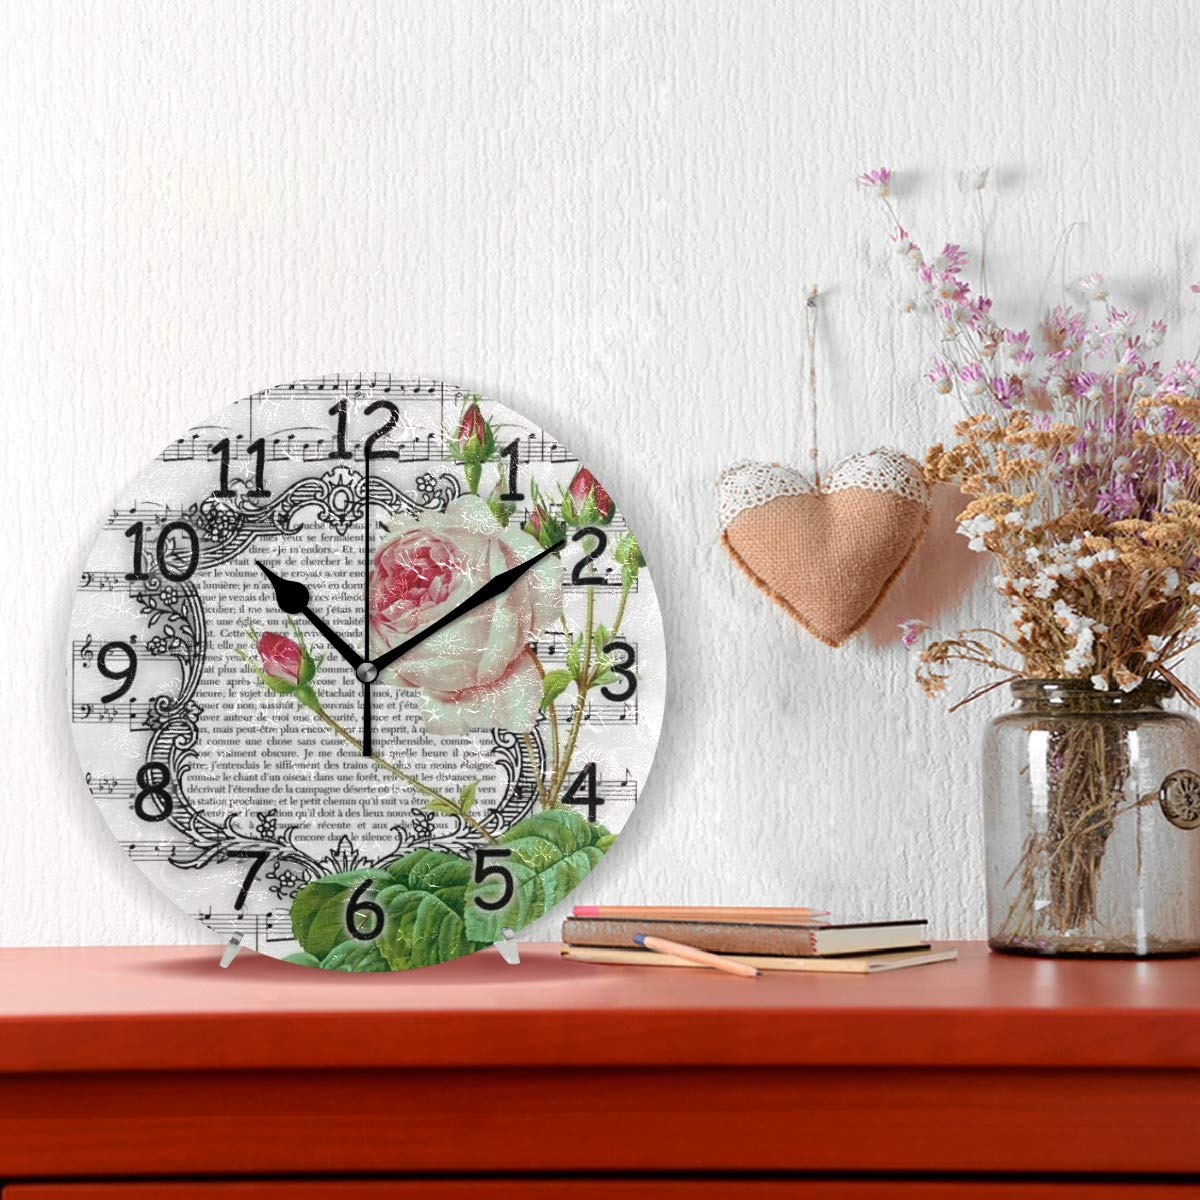 Amazon.com: Jacksome Round Wall Clock Vintage Style Design Round Decorative Wall Clock for Bedroom Decor: Home & Kitchen